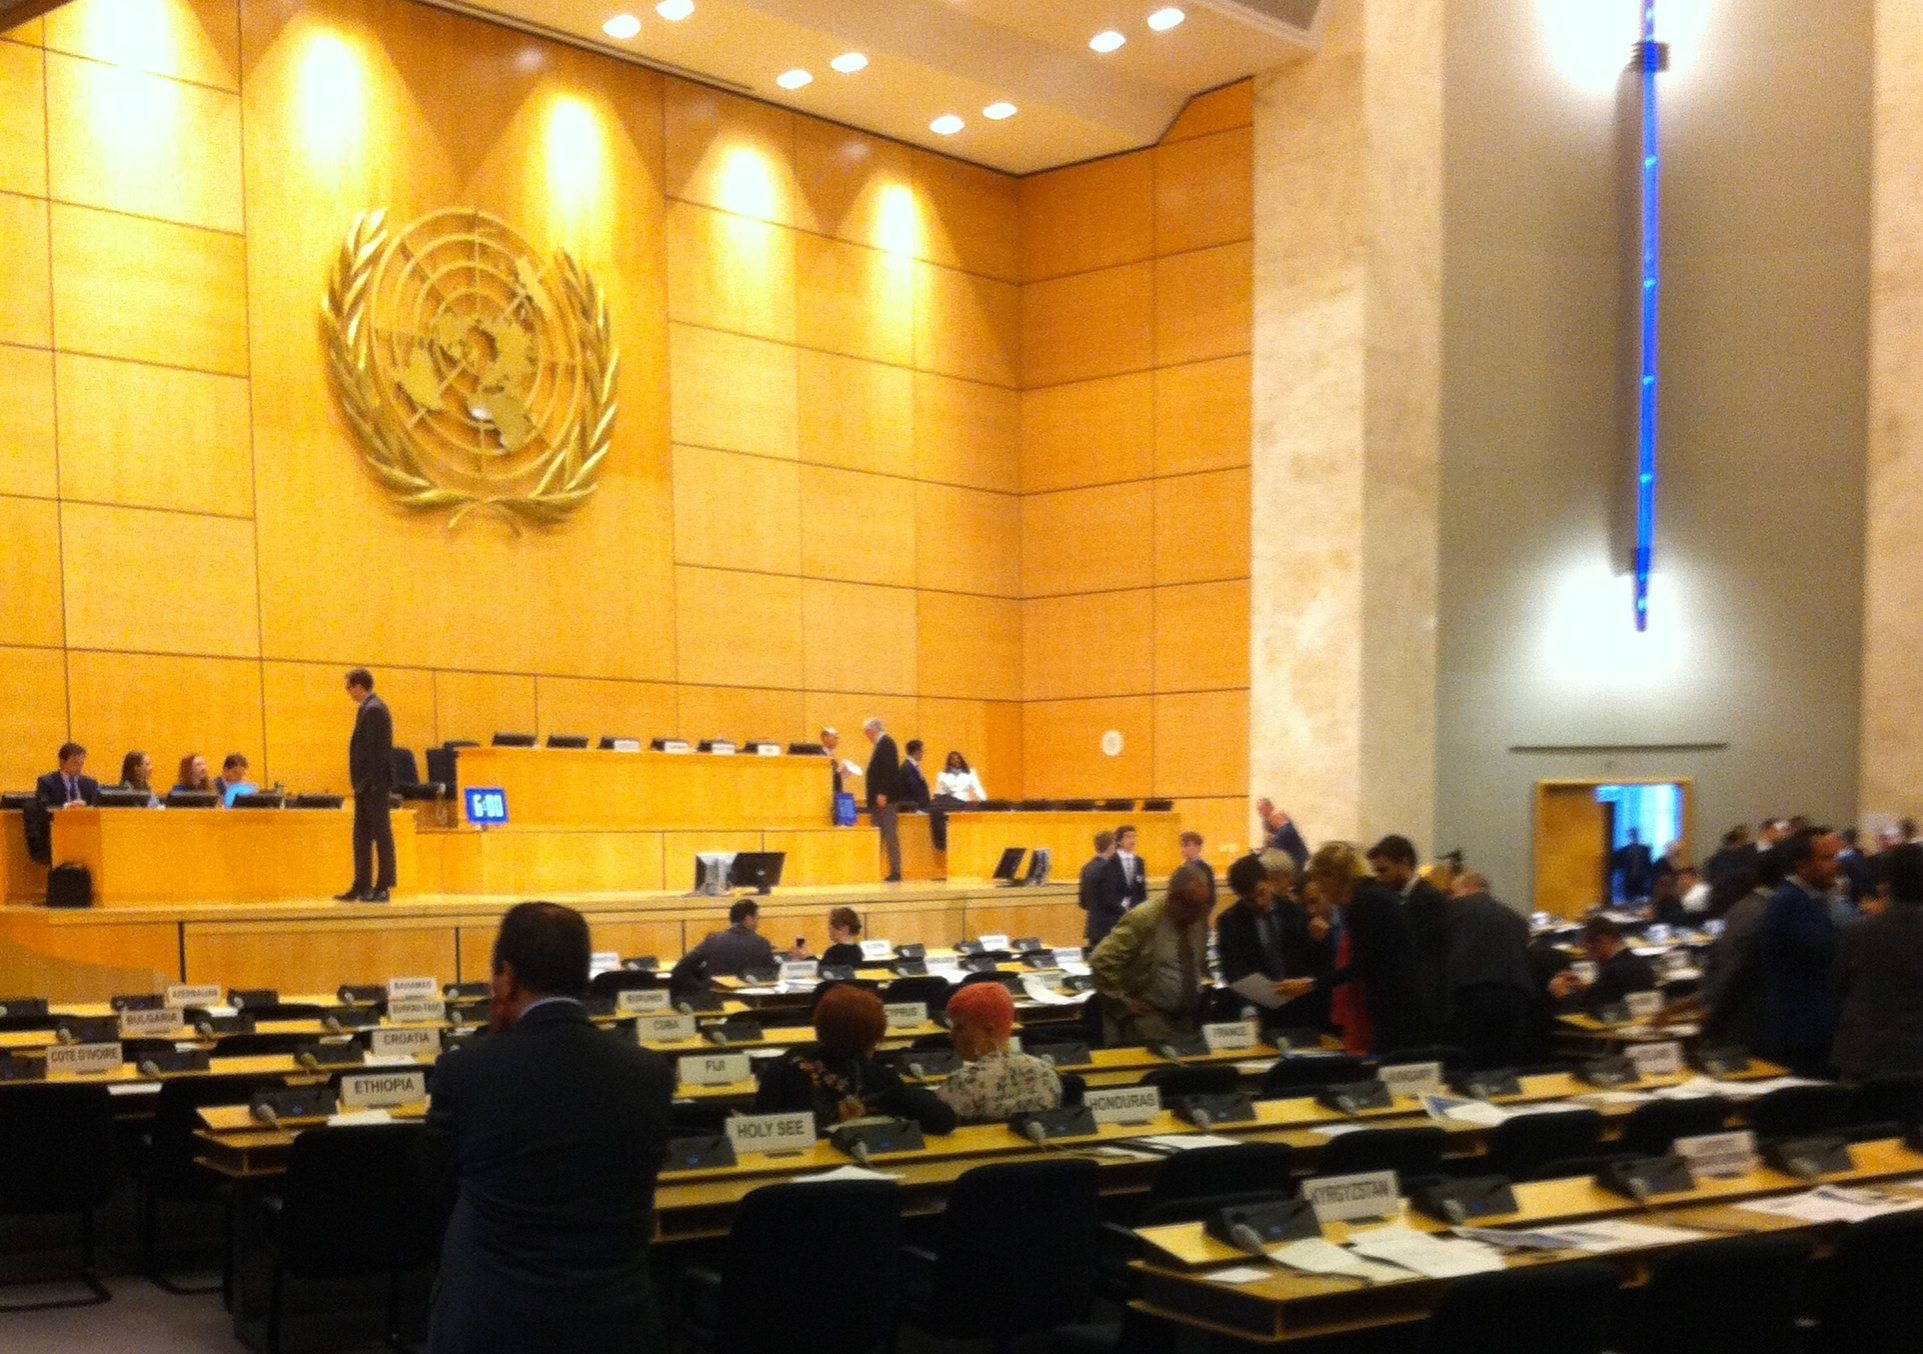 UN Assembly Hall. Geneva, Switzerland, 2018.